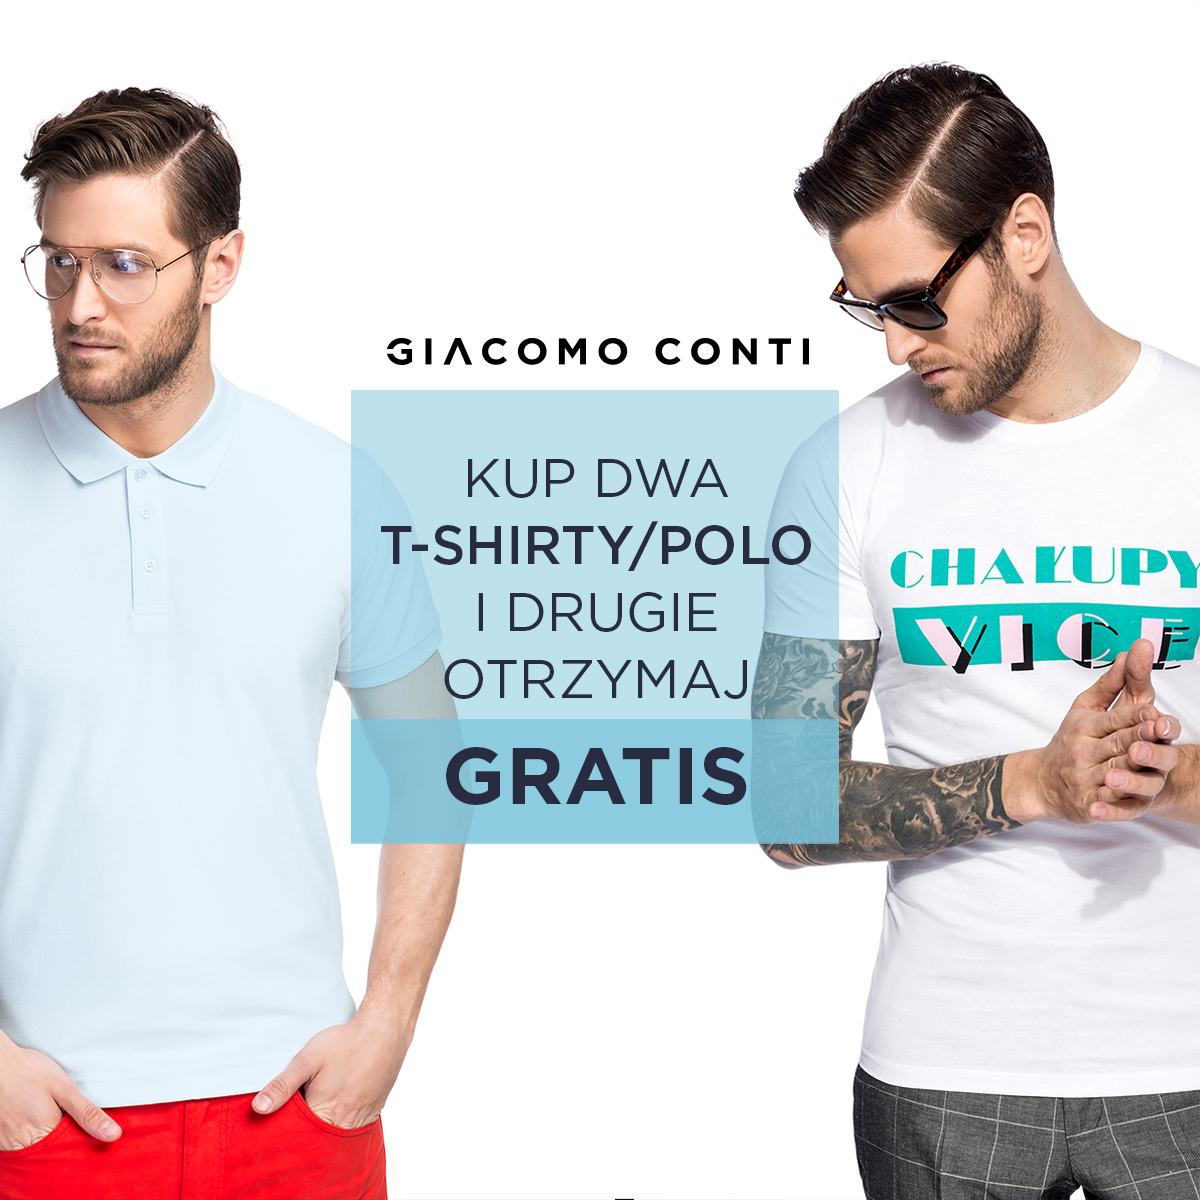 Druga szt. polo/T-shirt gratis